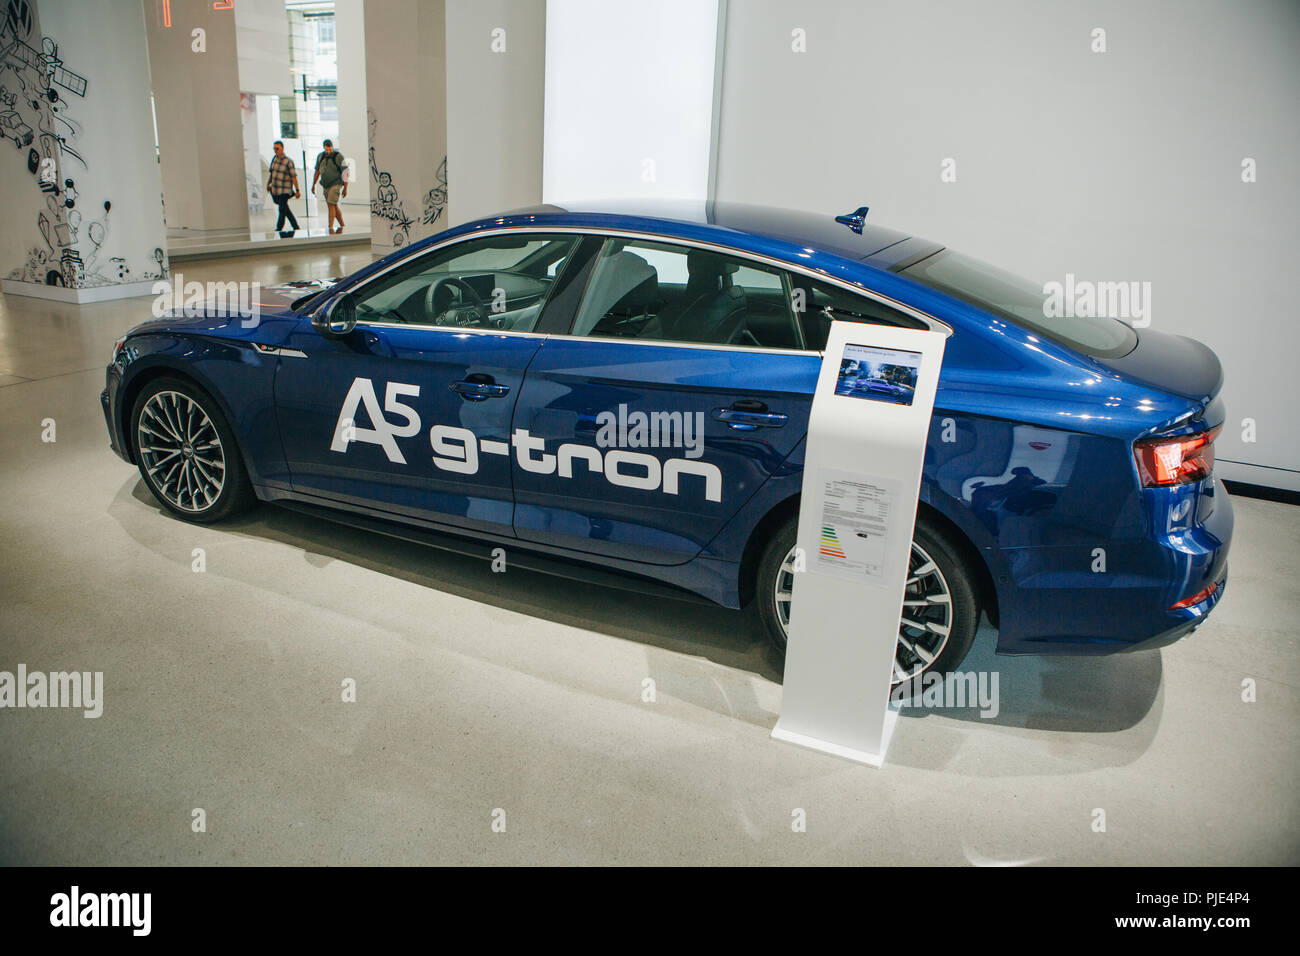 Berlin, August 29, 2018: New car Audi A5 g-tron presented at